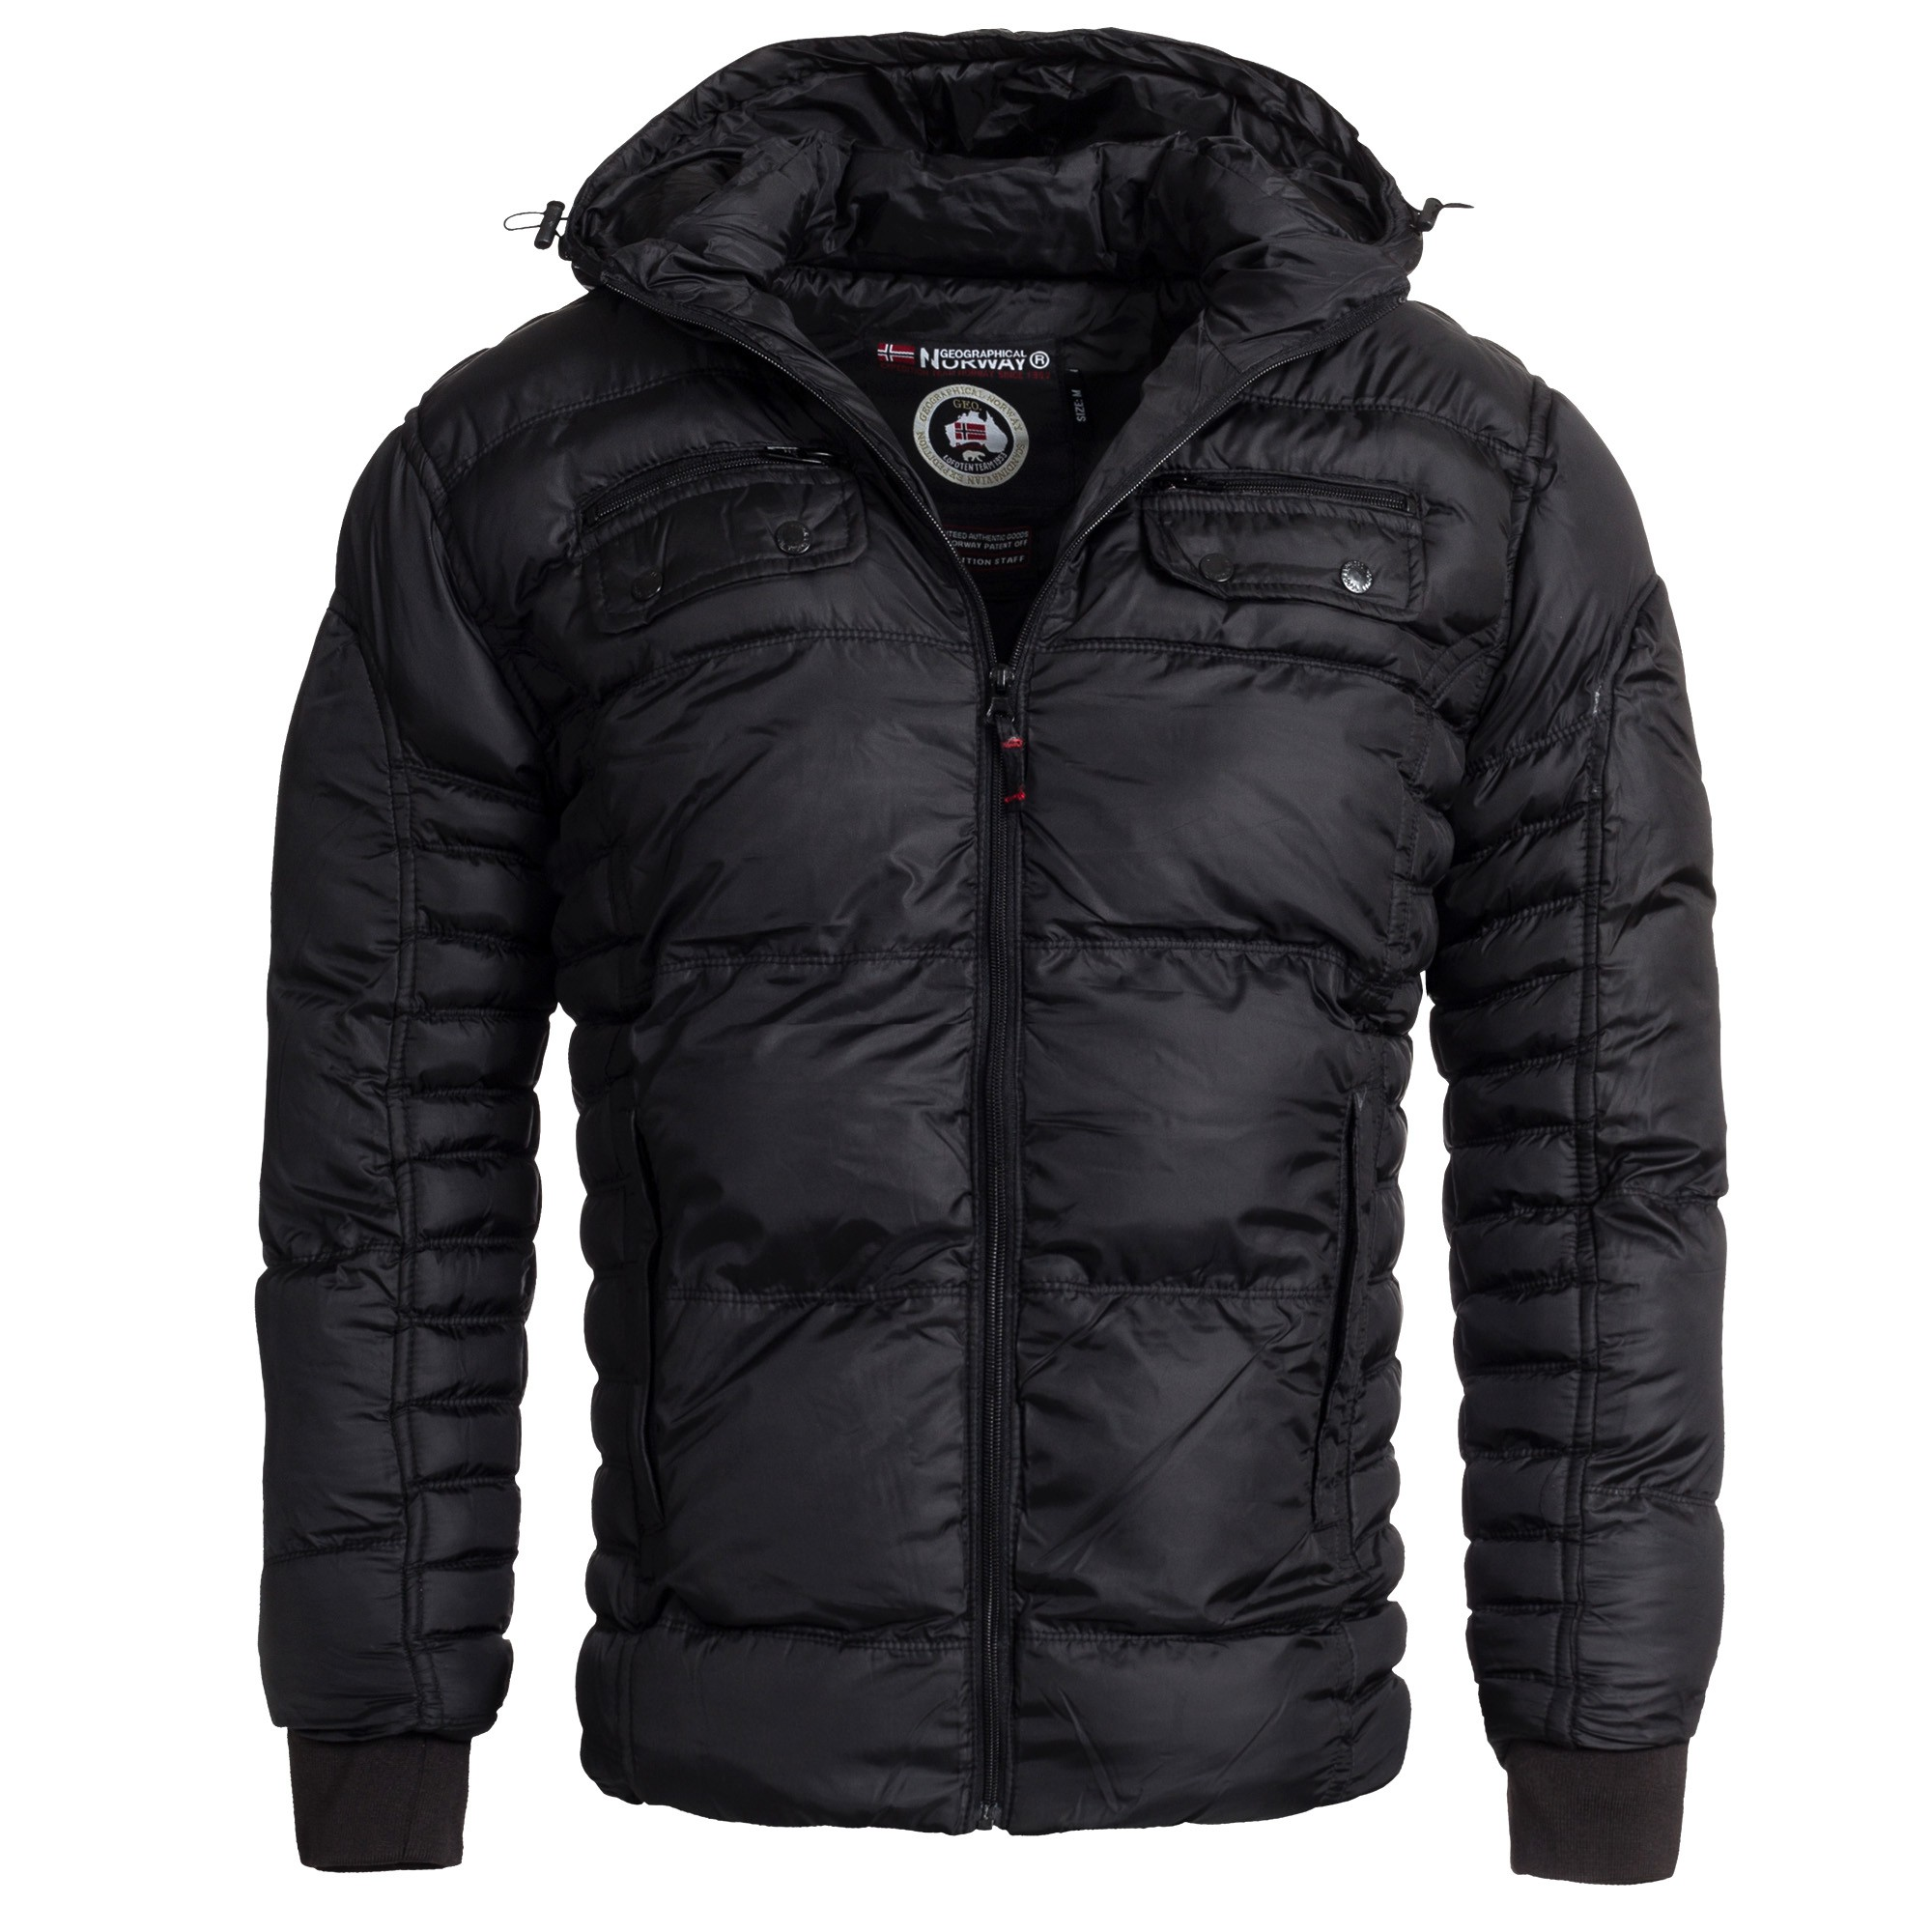 geographical norway buick herren winterjacke jacke steppjacke stepp gr s xxxl ebay. Black Bedroom Furniture Sets. Home Design Ideas